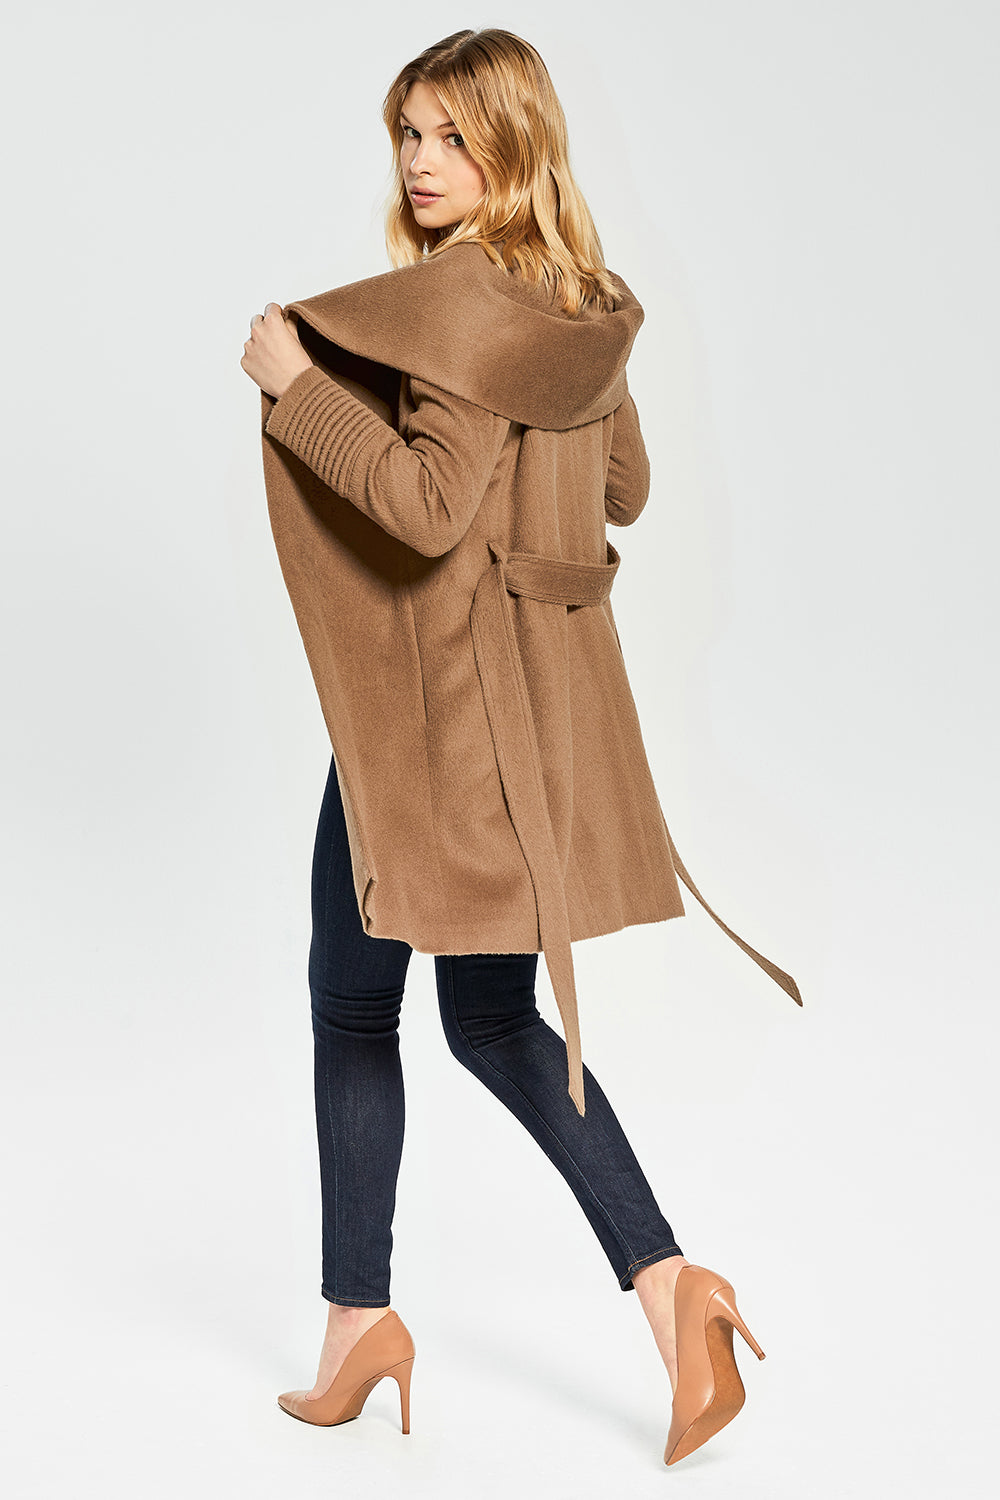 Sentaler Mid Length Hooded Wrap Coat featured in Baby Alpaca and available in Dark Camel. Seen open.